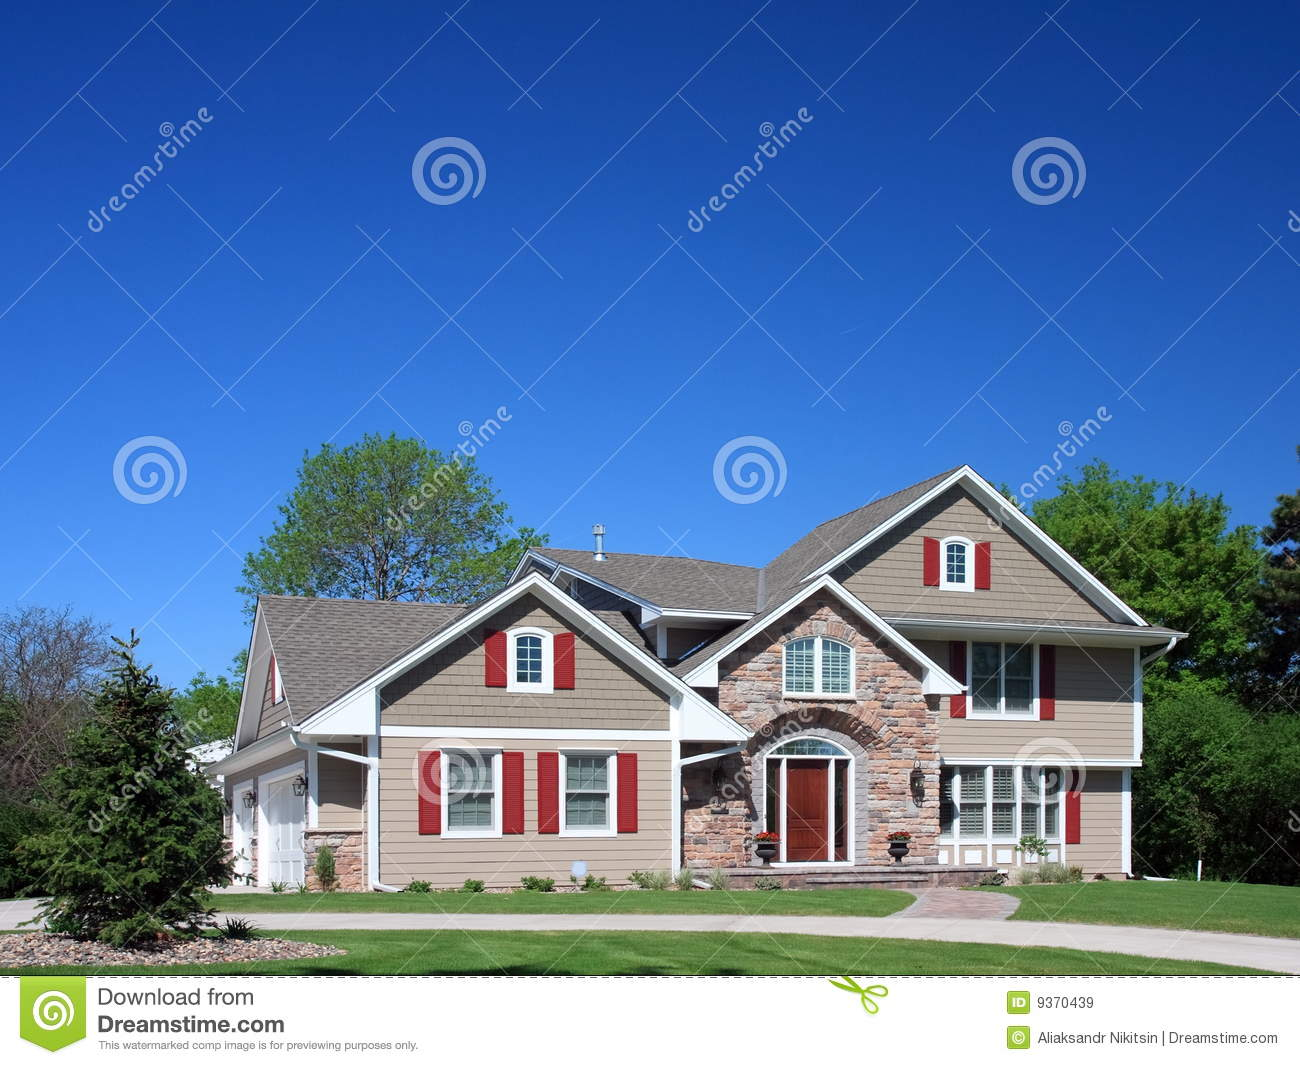 Residential House In Minneapolis Royalty Free Stock Images